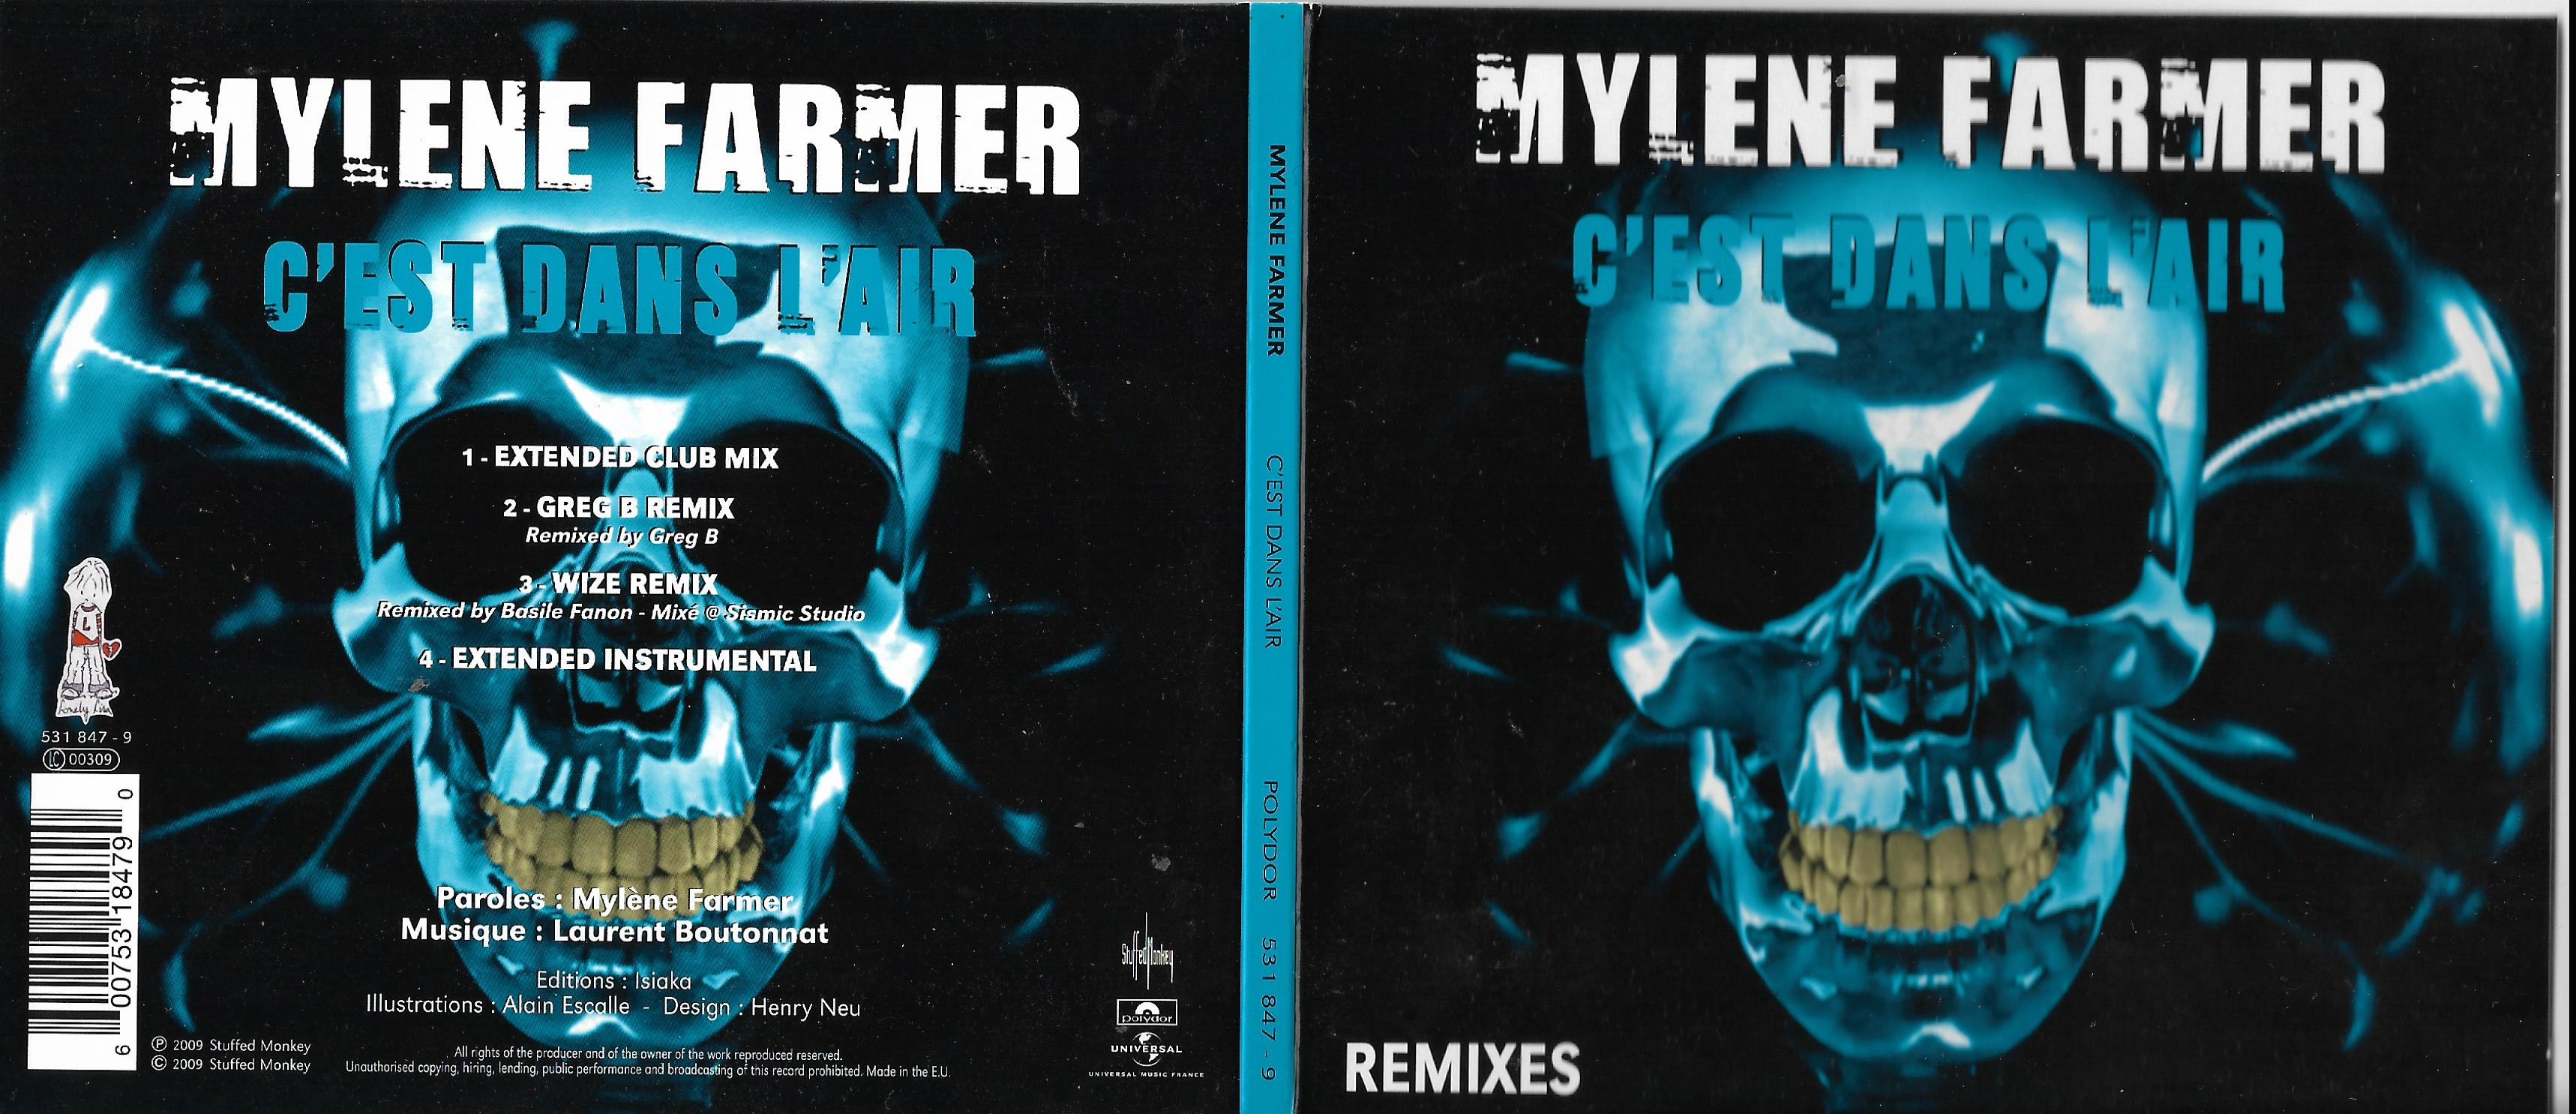 Mylène FARMER - C'est Dans L'air Part 2 Remixes Ltd Ed 4 Tracks